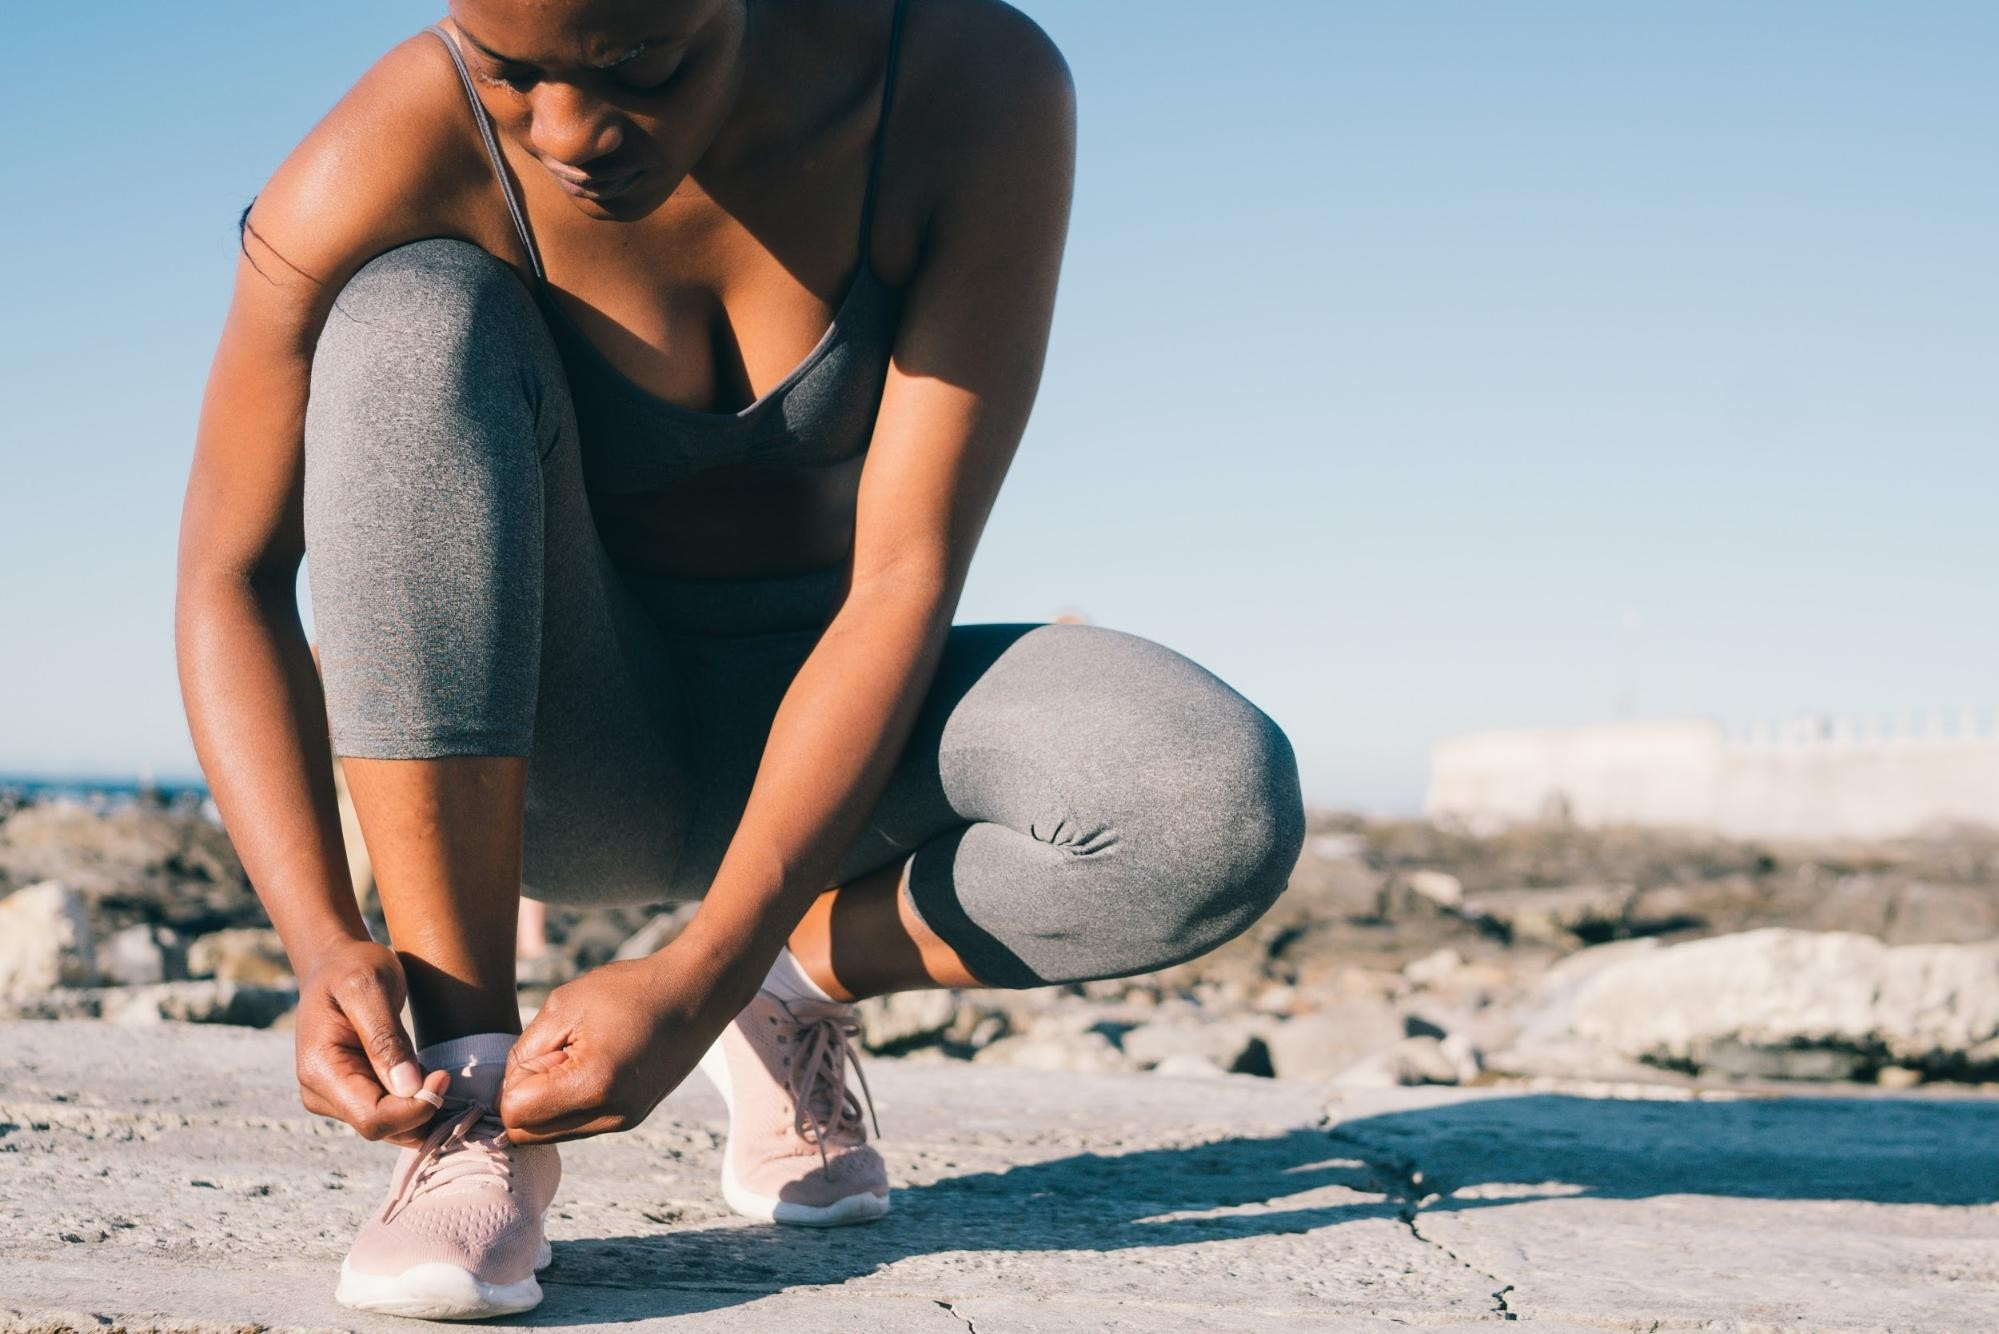 Athletic woman tying shoes